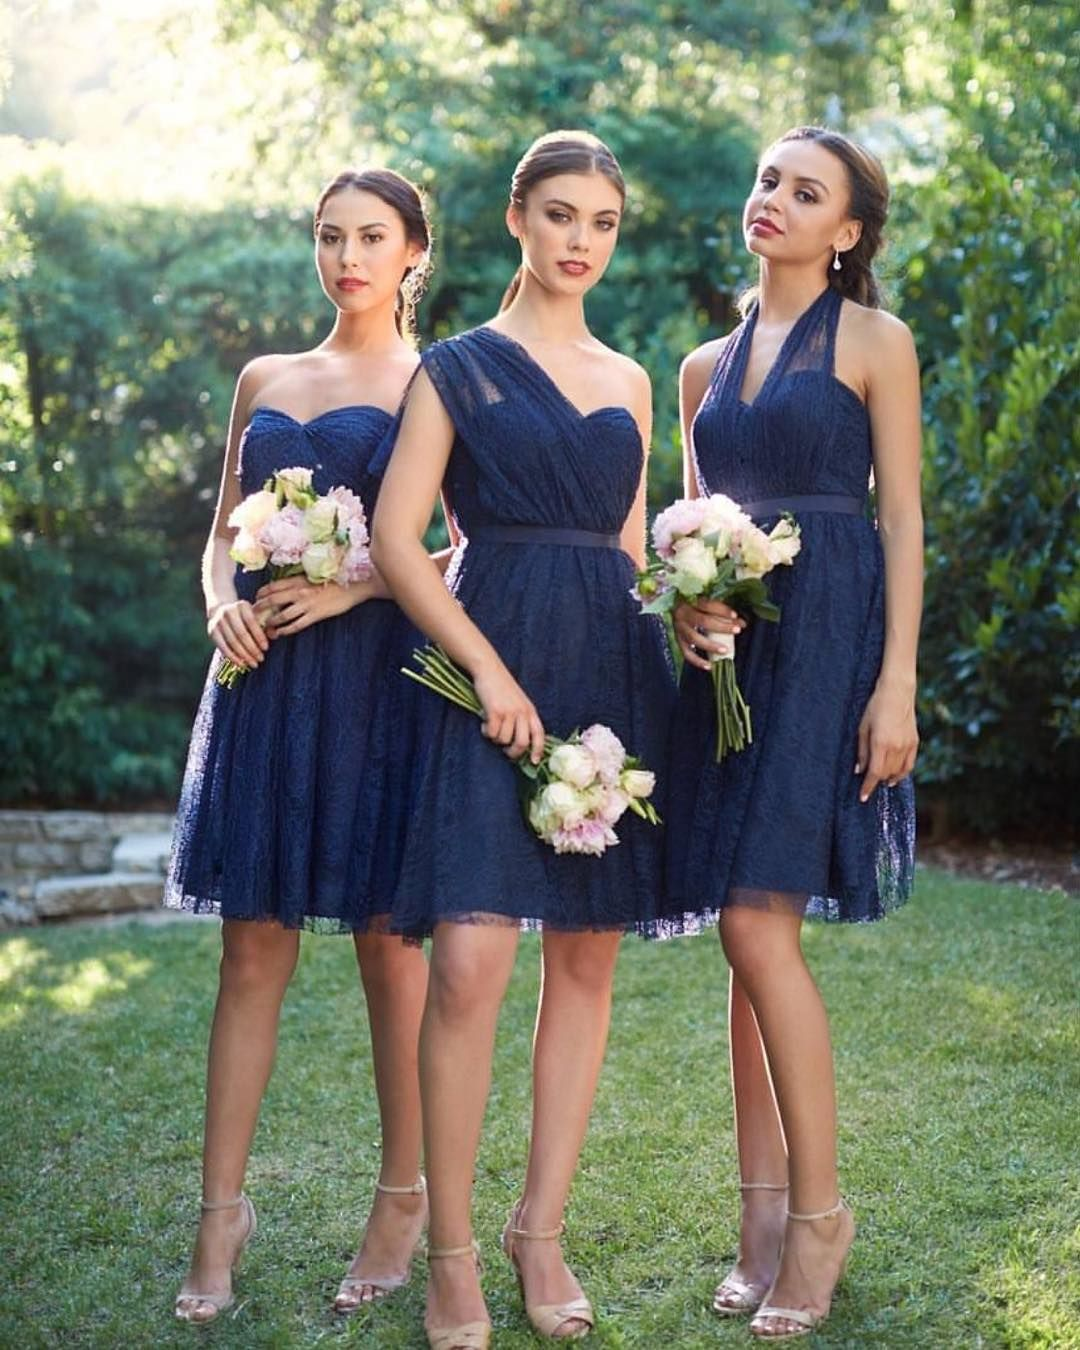 How many ways can you style the convertible lace jennyyoonyc something blue for your bridesmaids rent the convertible lace jenny yoo aster bridesmaid dress at vow to be chic ombrellifo Gallery